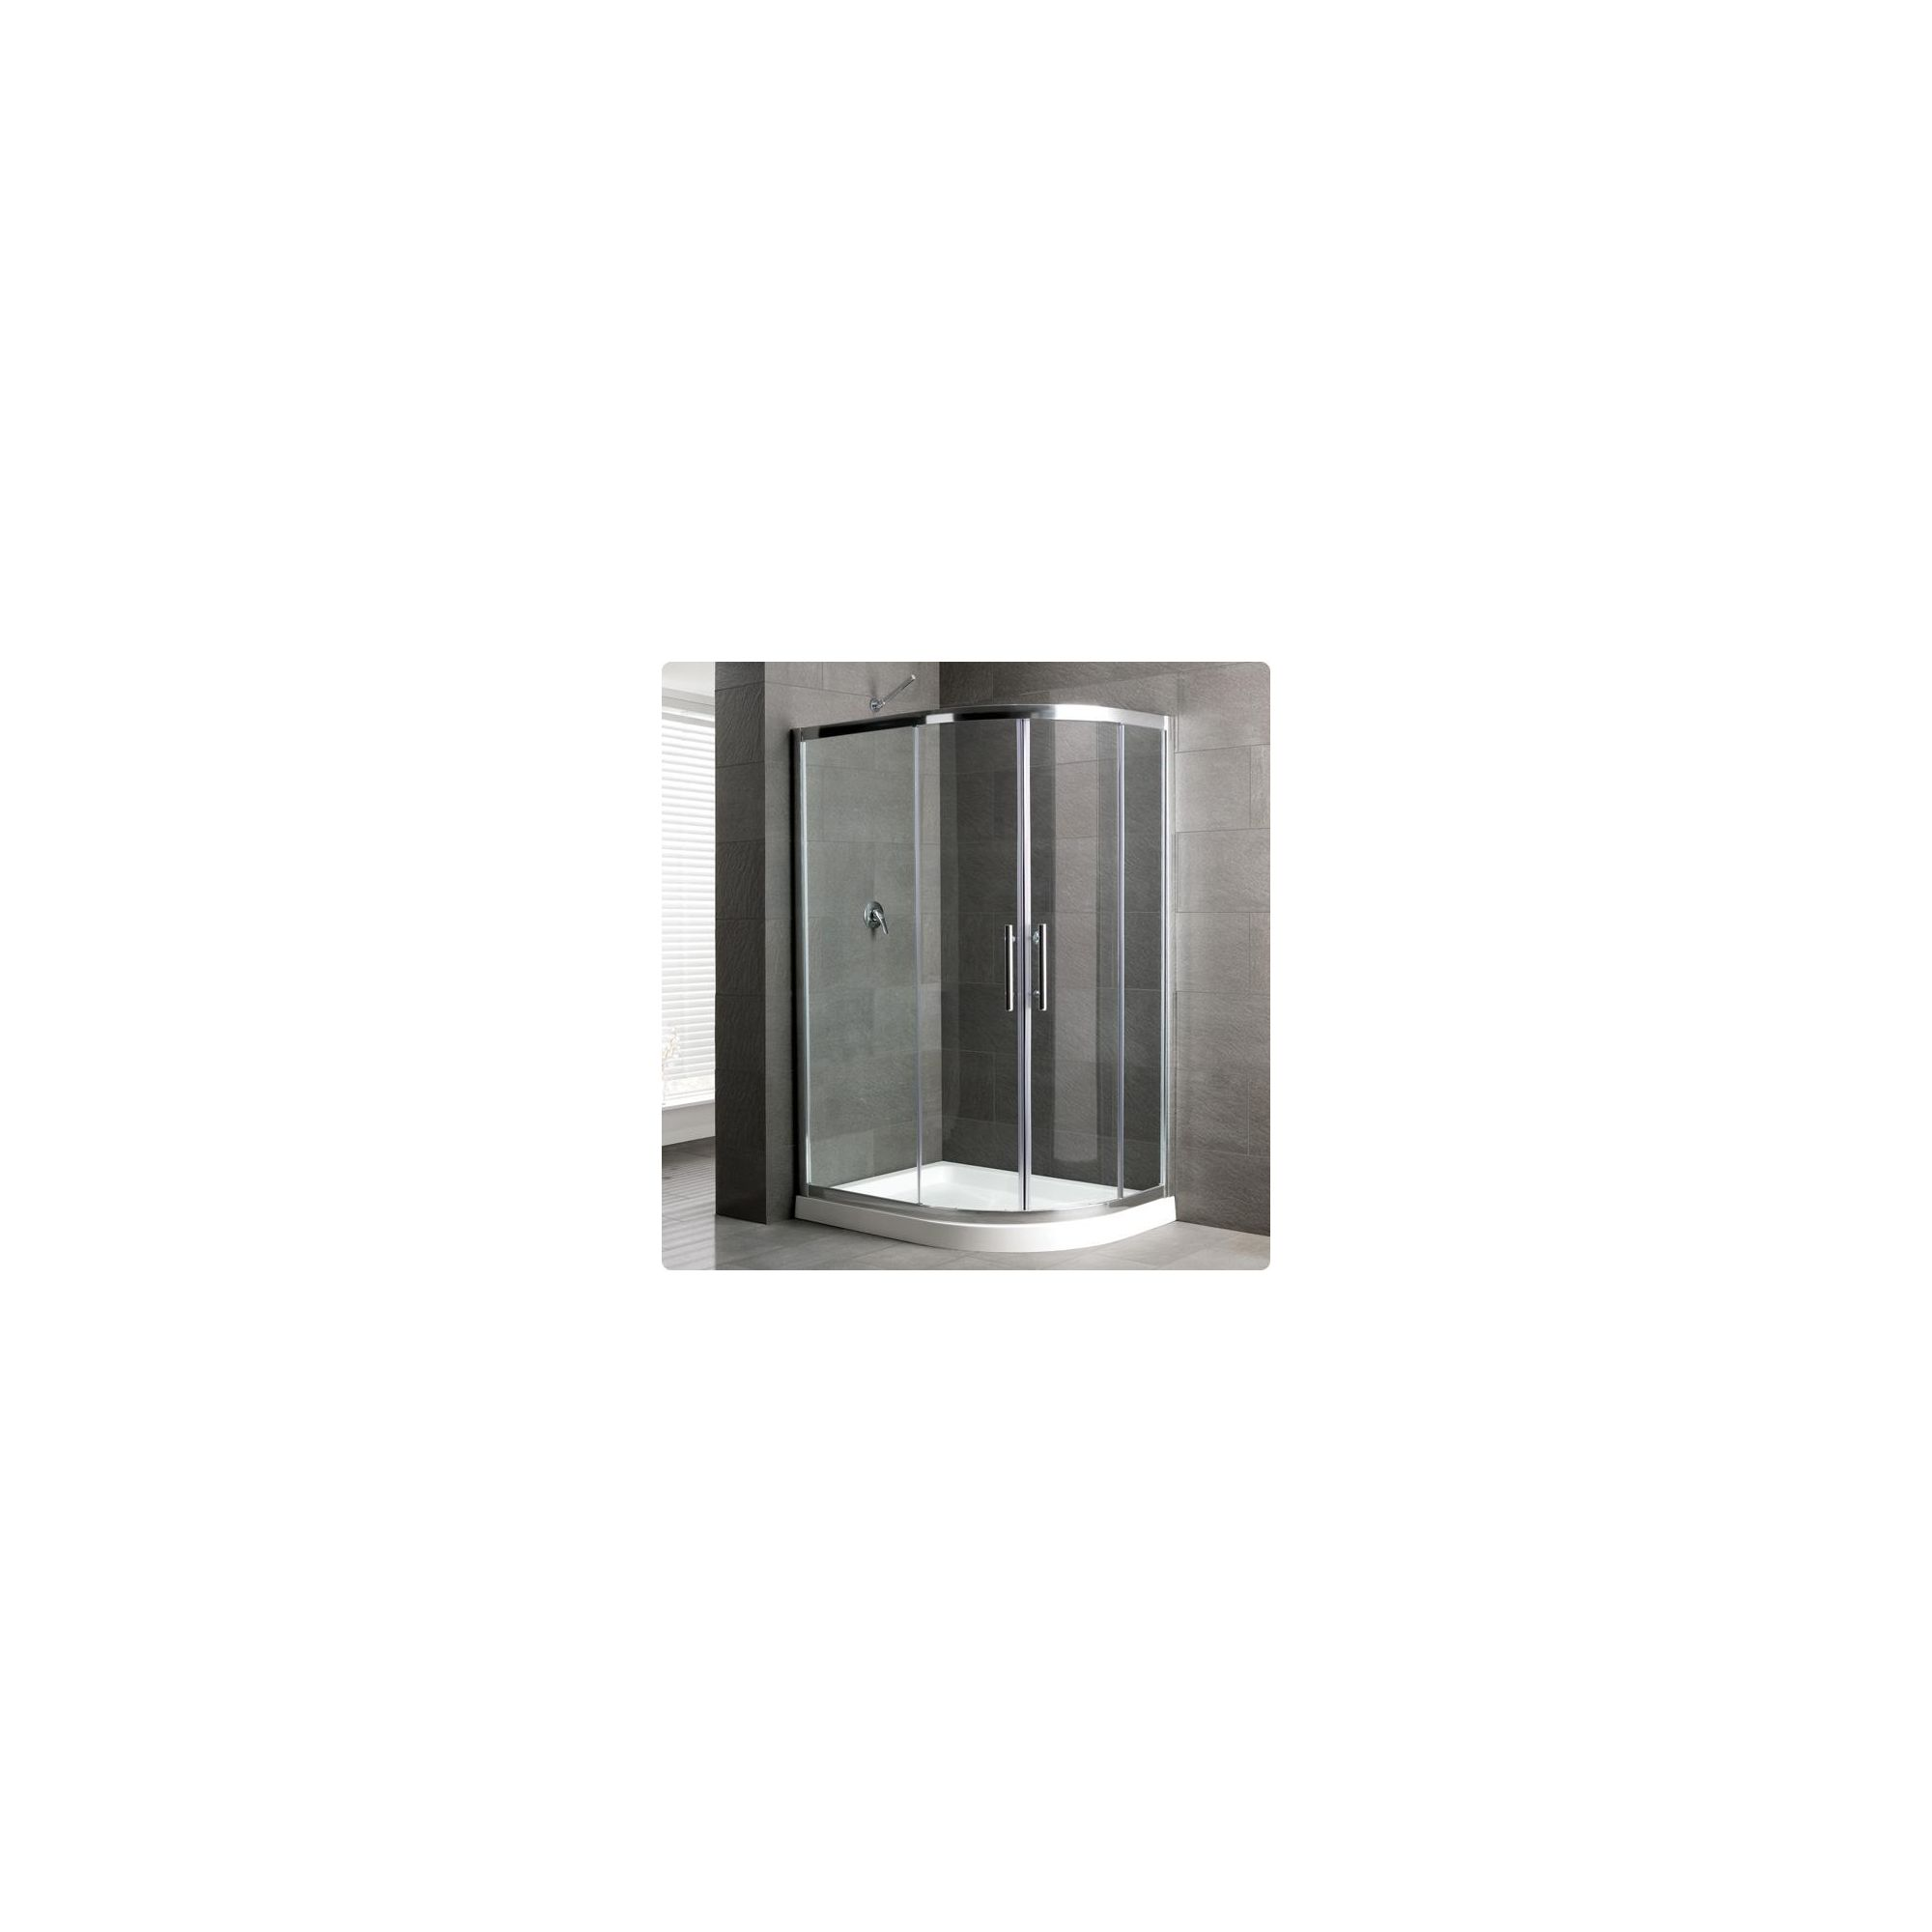 Duchy Select Silver 2 Door Offset Quadrant Shower Enclosure 1200mm x 900mm, Standard Tray, 6mm Glass at Tesco Direct